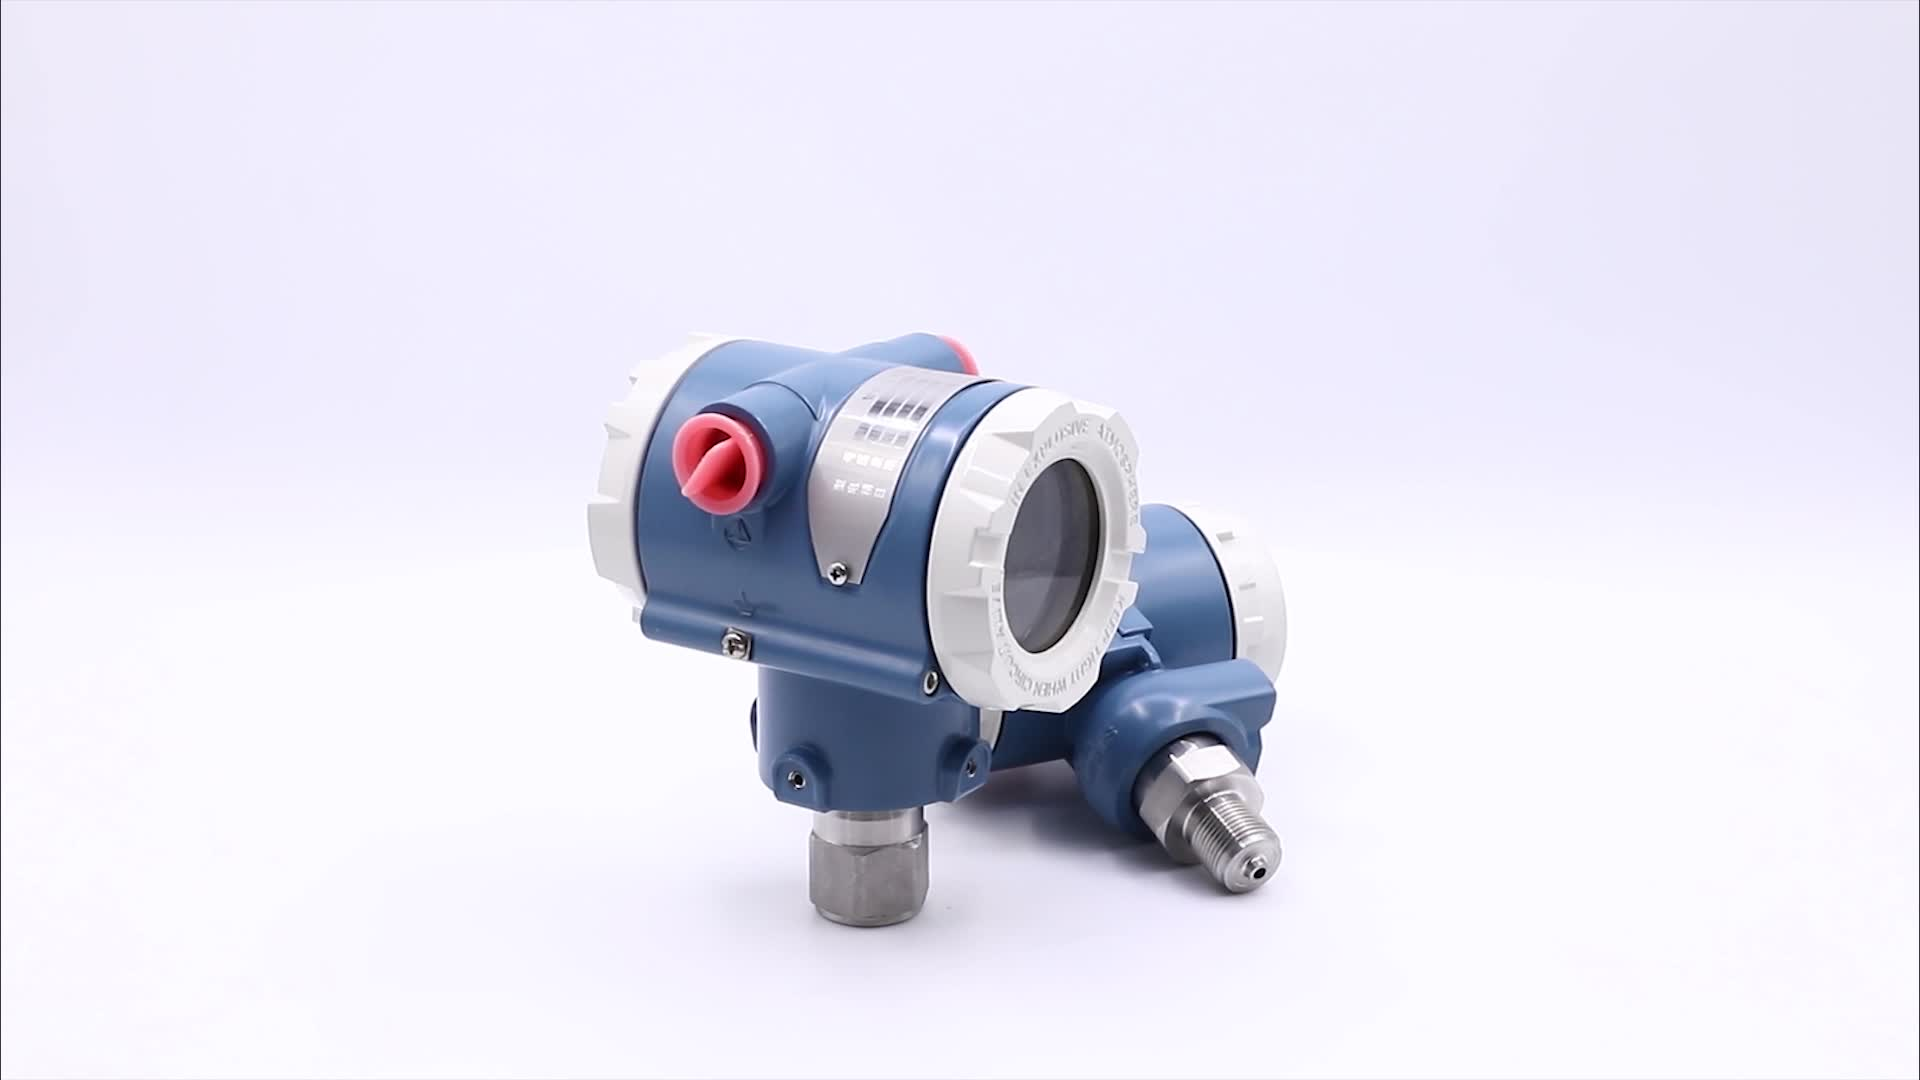 Sanitary pressure transmitter for food, beverage, pharmaceutical and biotechnology